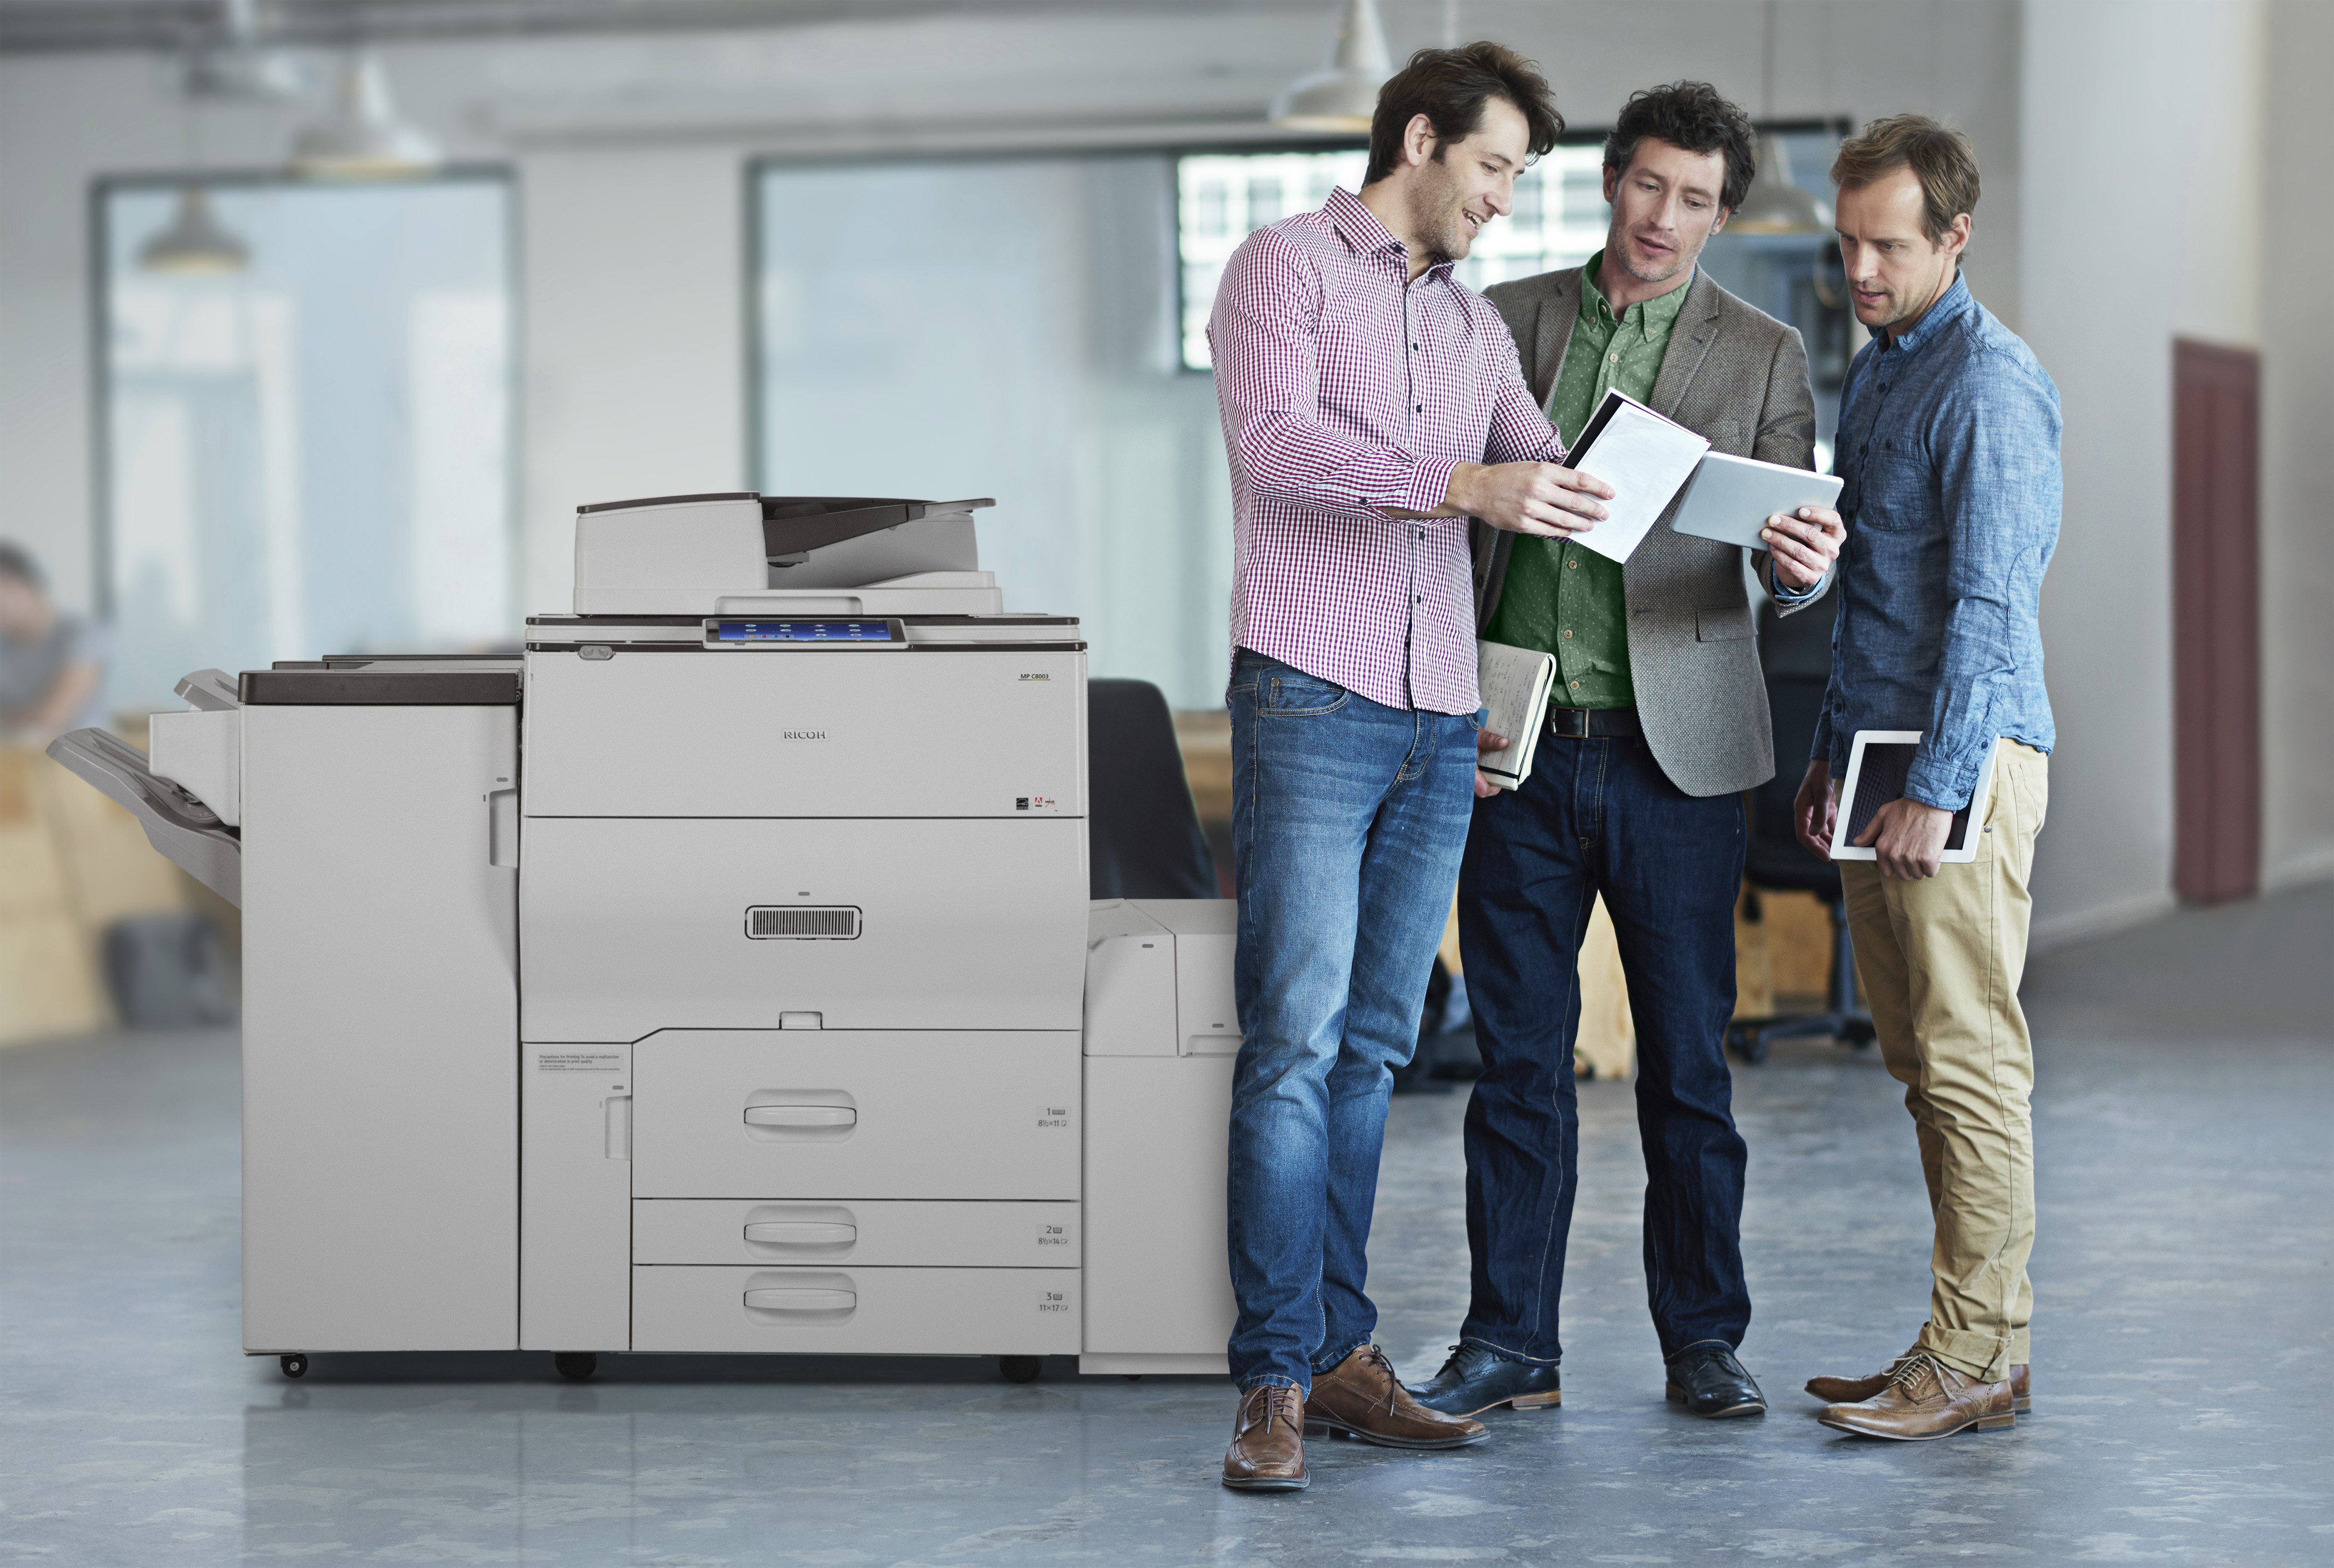 All In One Printers in Williamsville, NY